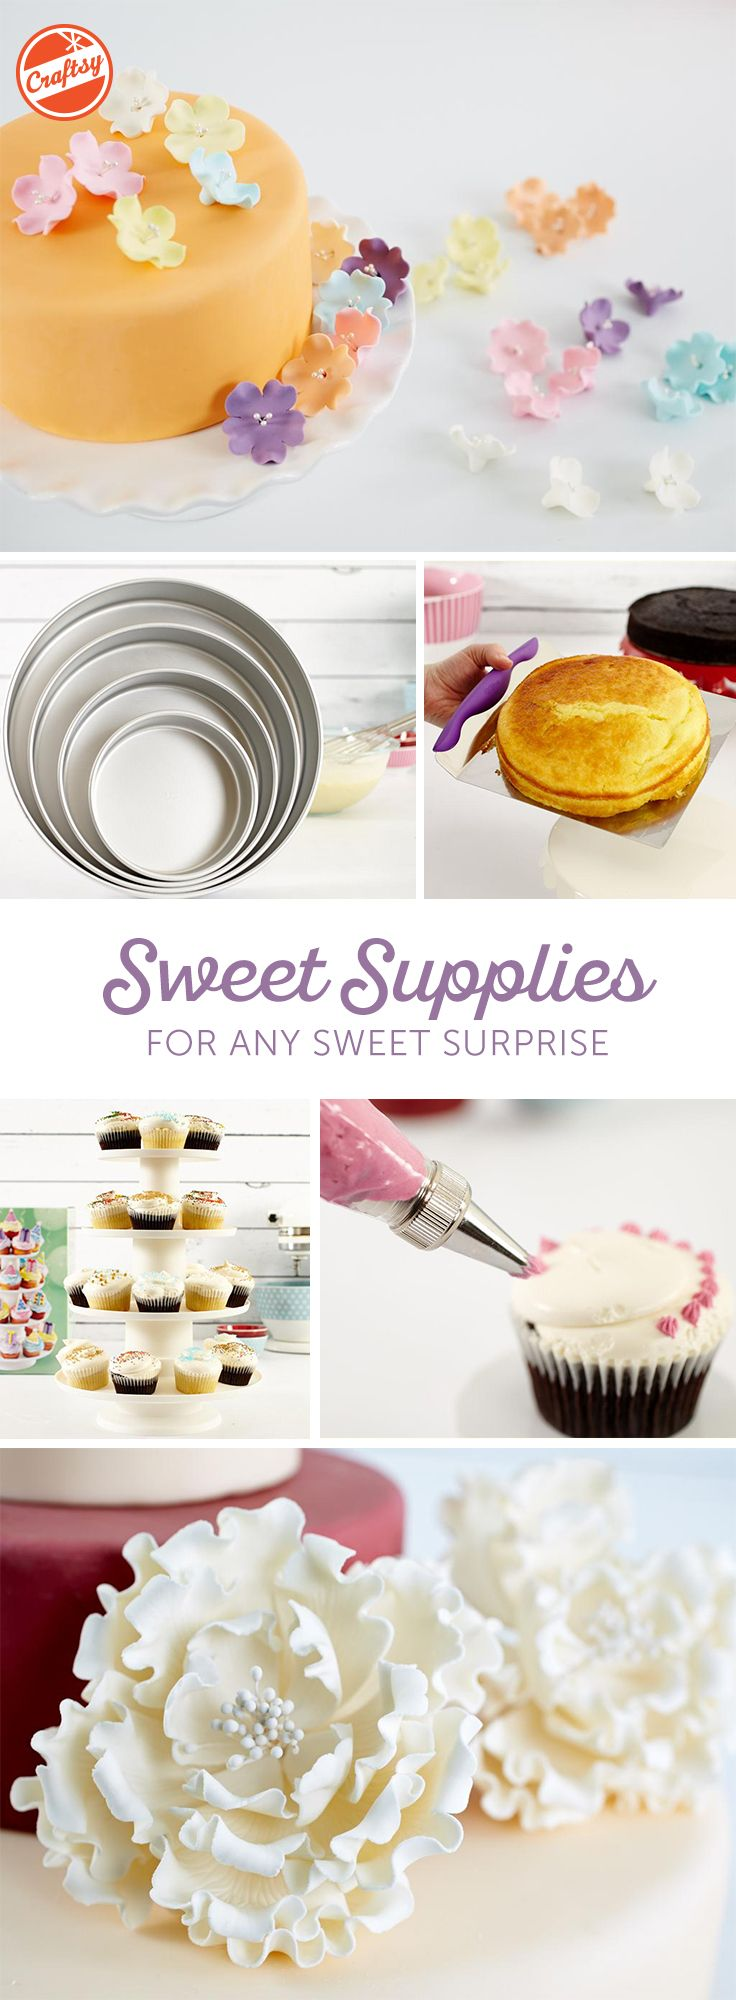 Find the decorating tools you need at prices you can't help but fall for. Get molds, stencils, fondants, pans and much more, as you enjoy a secure, easy and enjoyable online shopping experience.